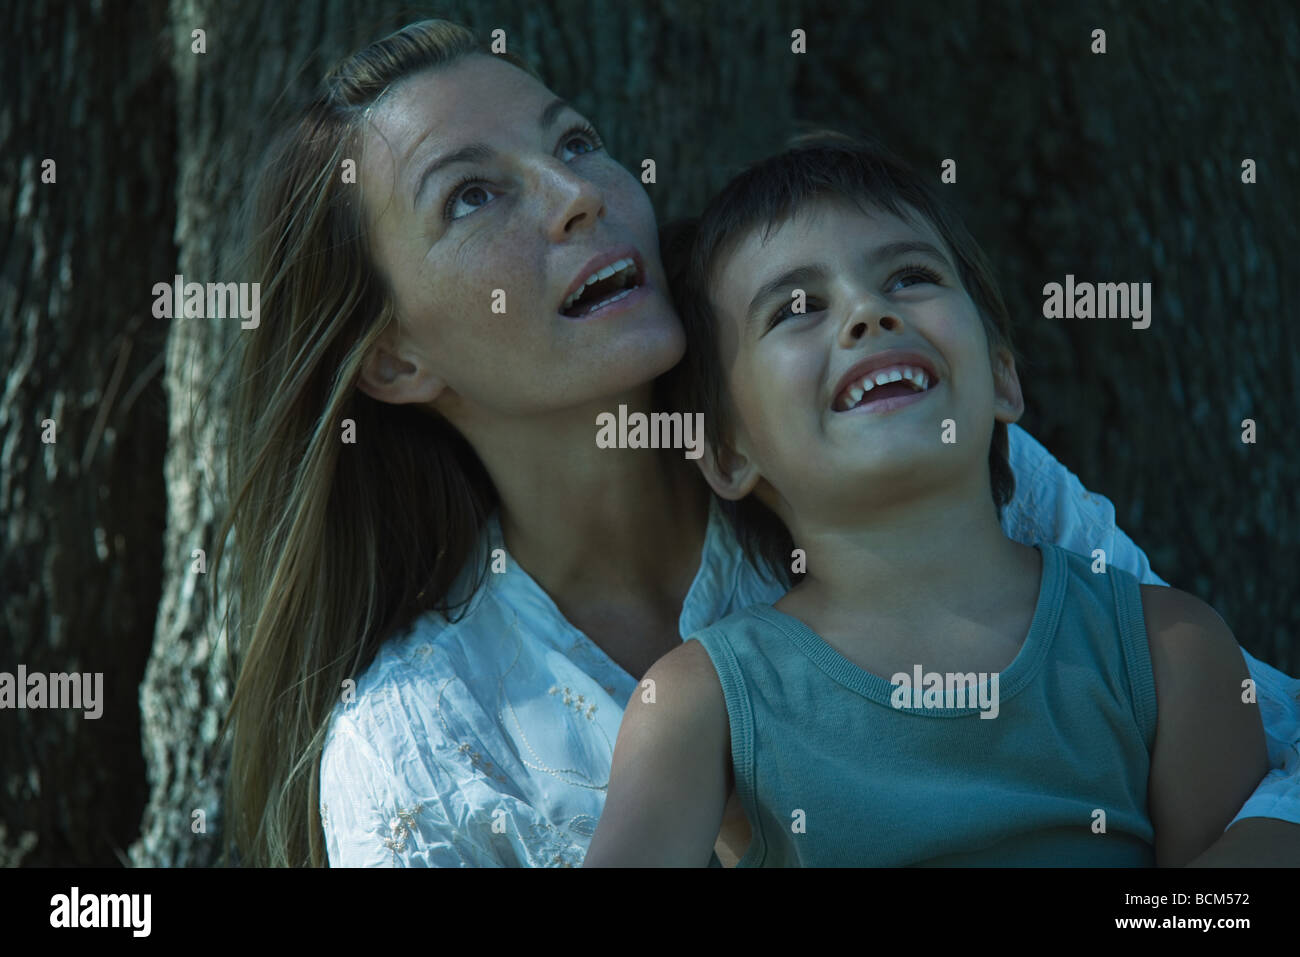 Mother sitting beneath tree with son in lap, both looking up - Stock Image